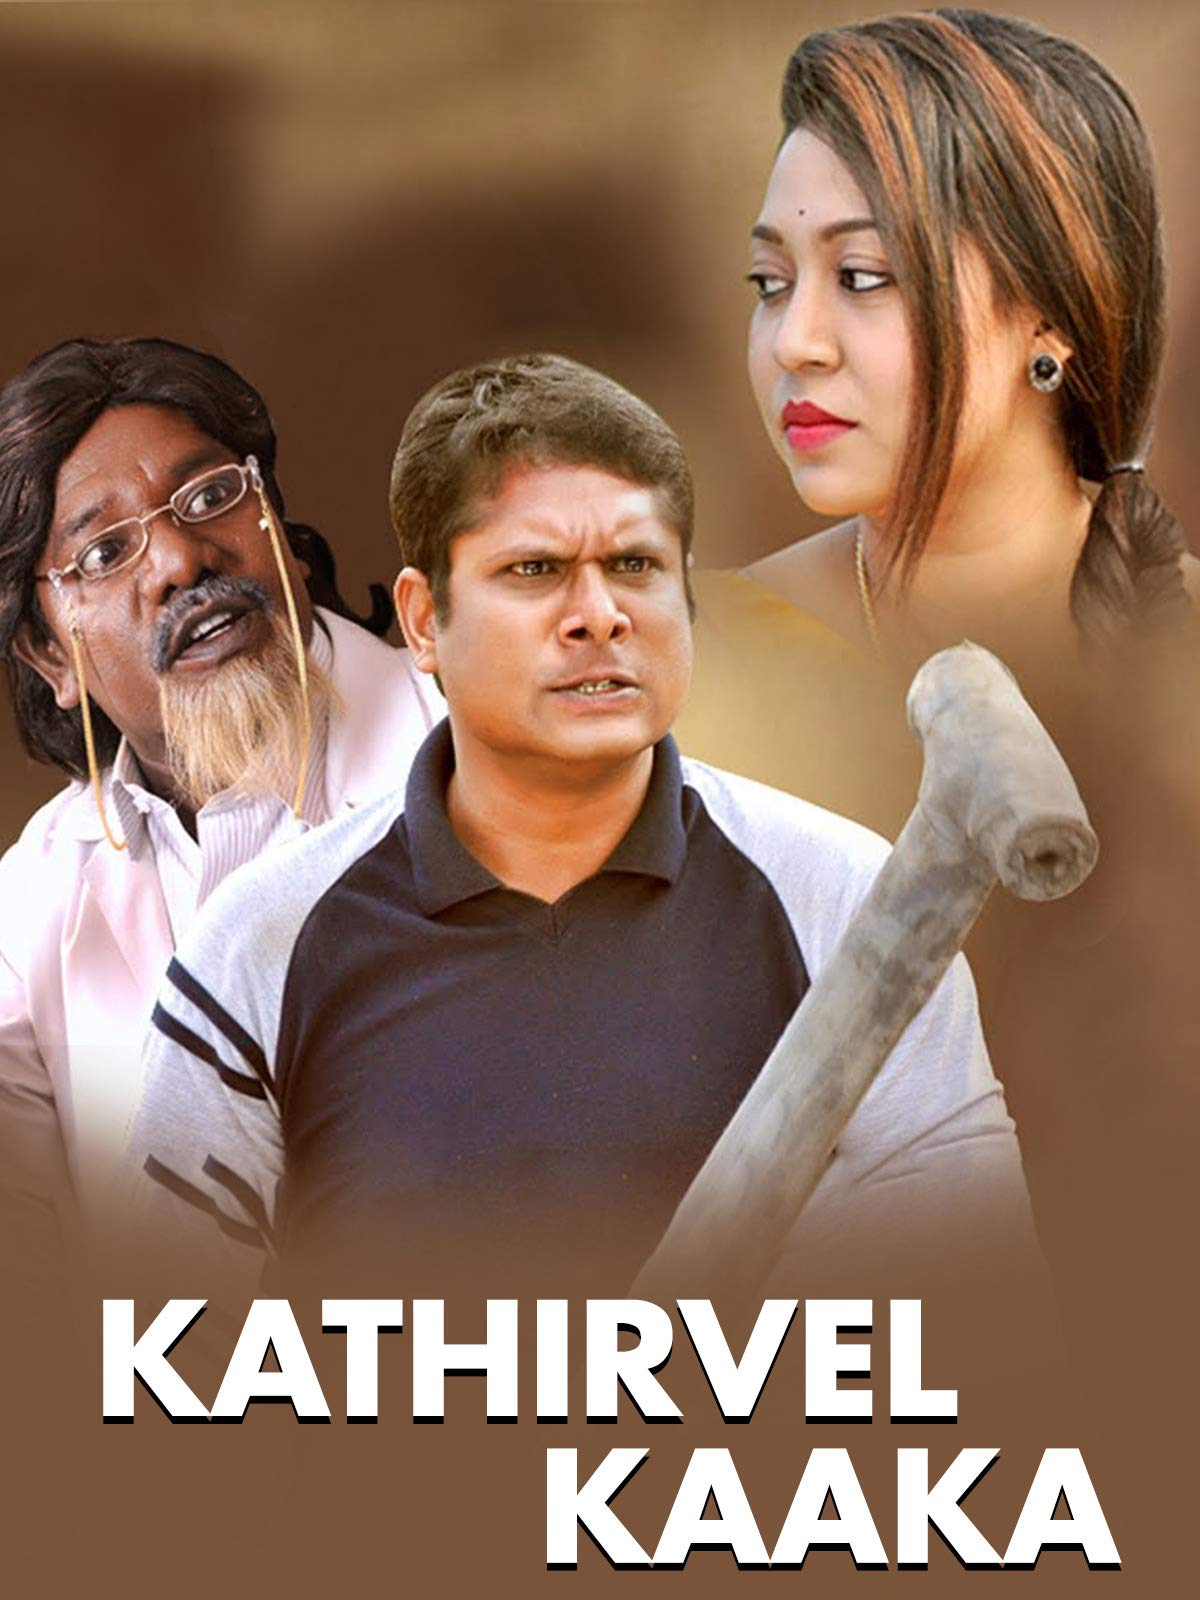 Veera The Power (Kathirvel Kakka) 2019 Hindi Dubbed 720p HDRip 1GB